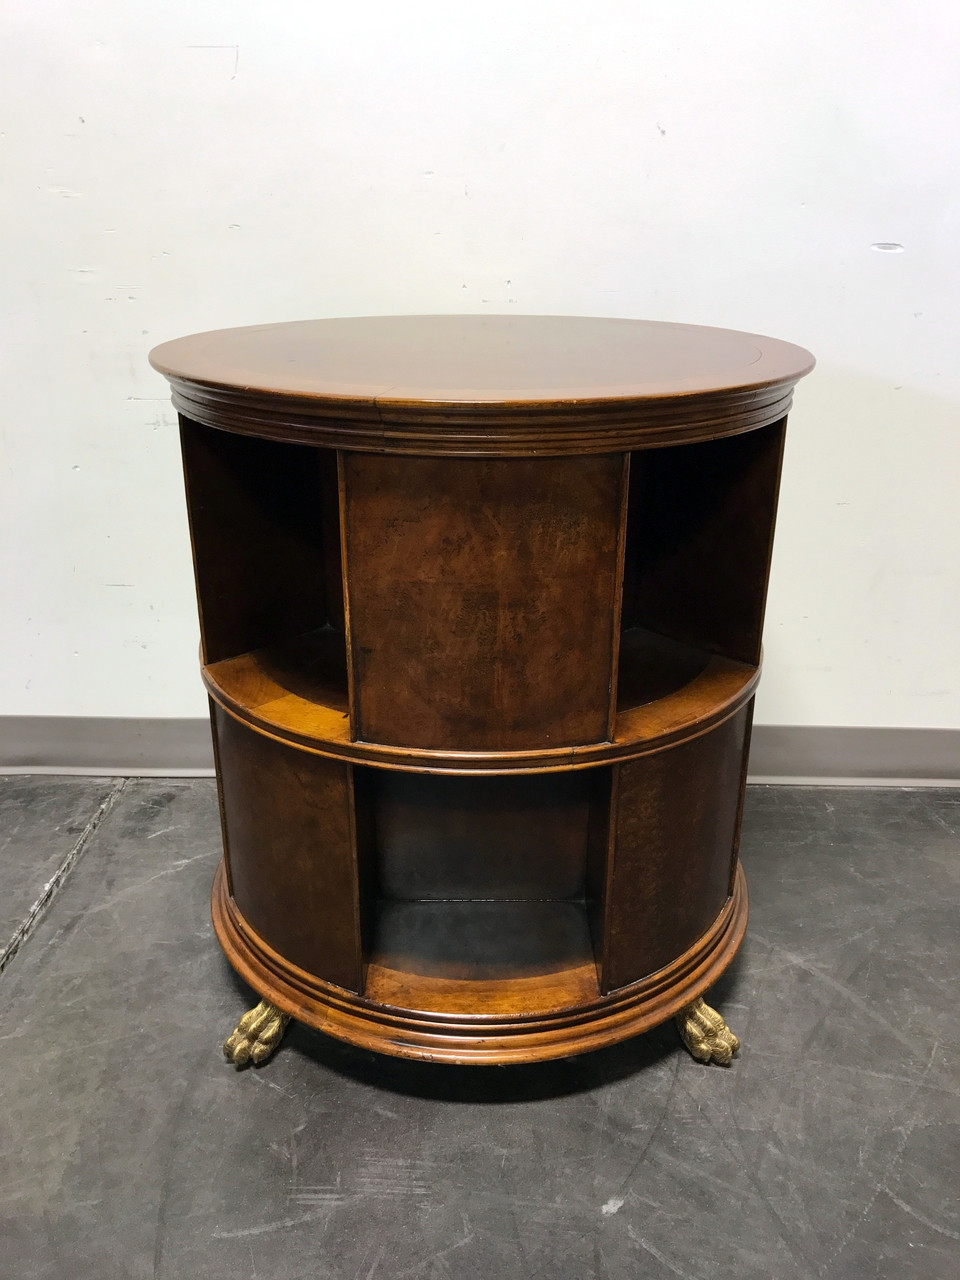 sold out drexel heritage et cetera book table chairside end side table